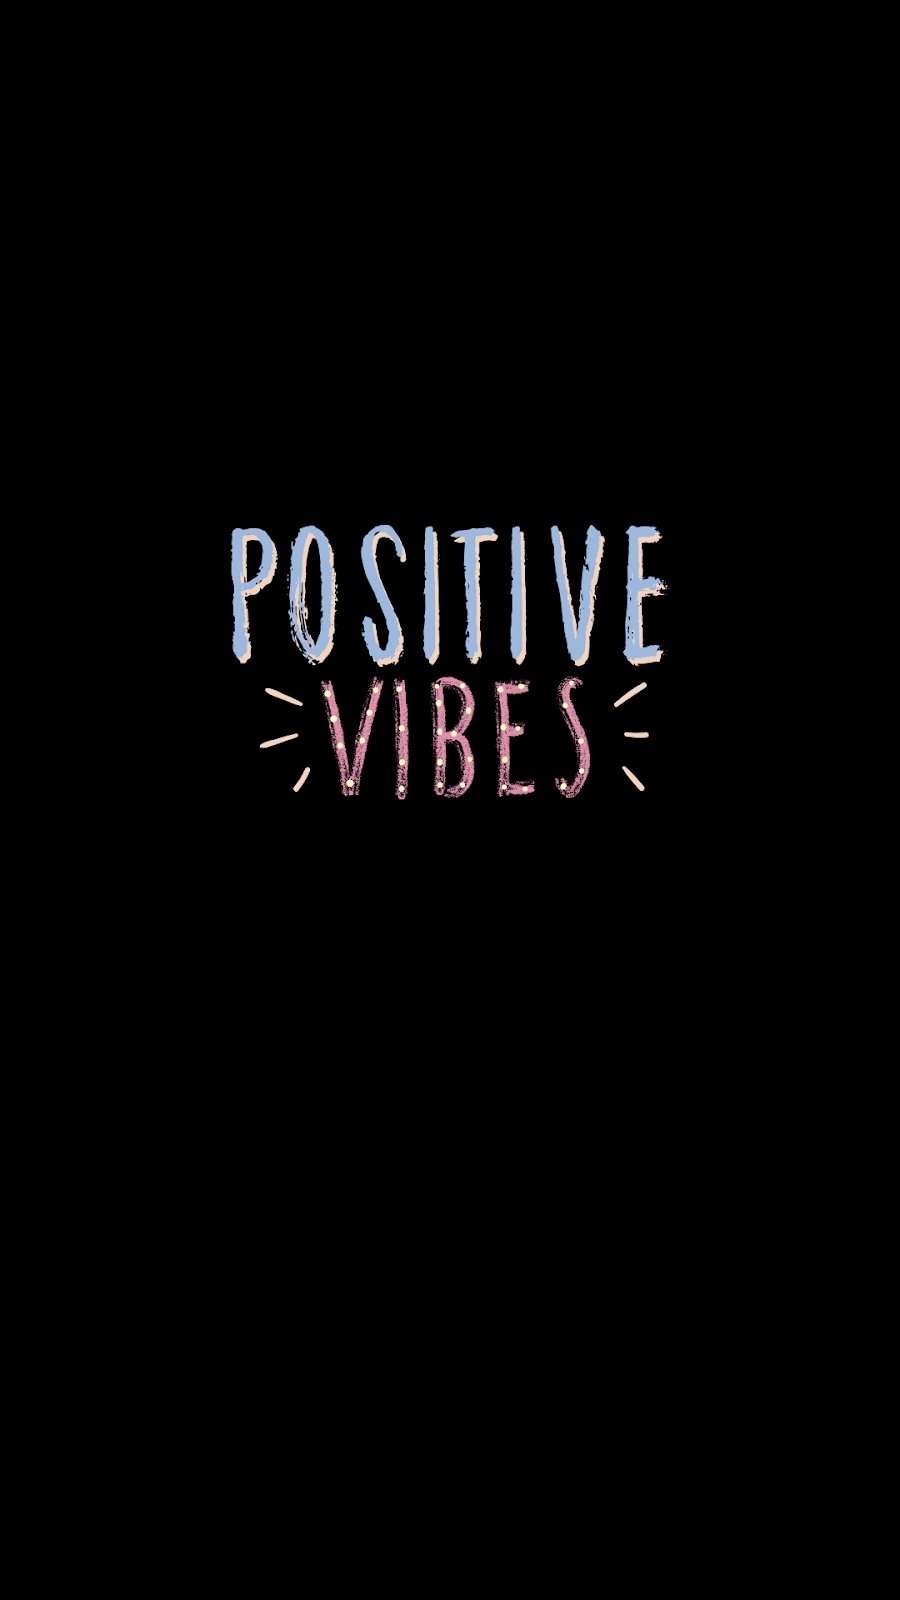 positivism black wallpaper background amoled oled positive vibes